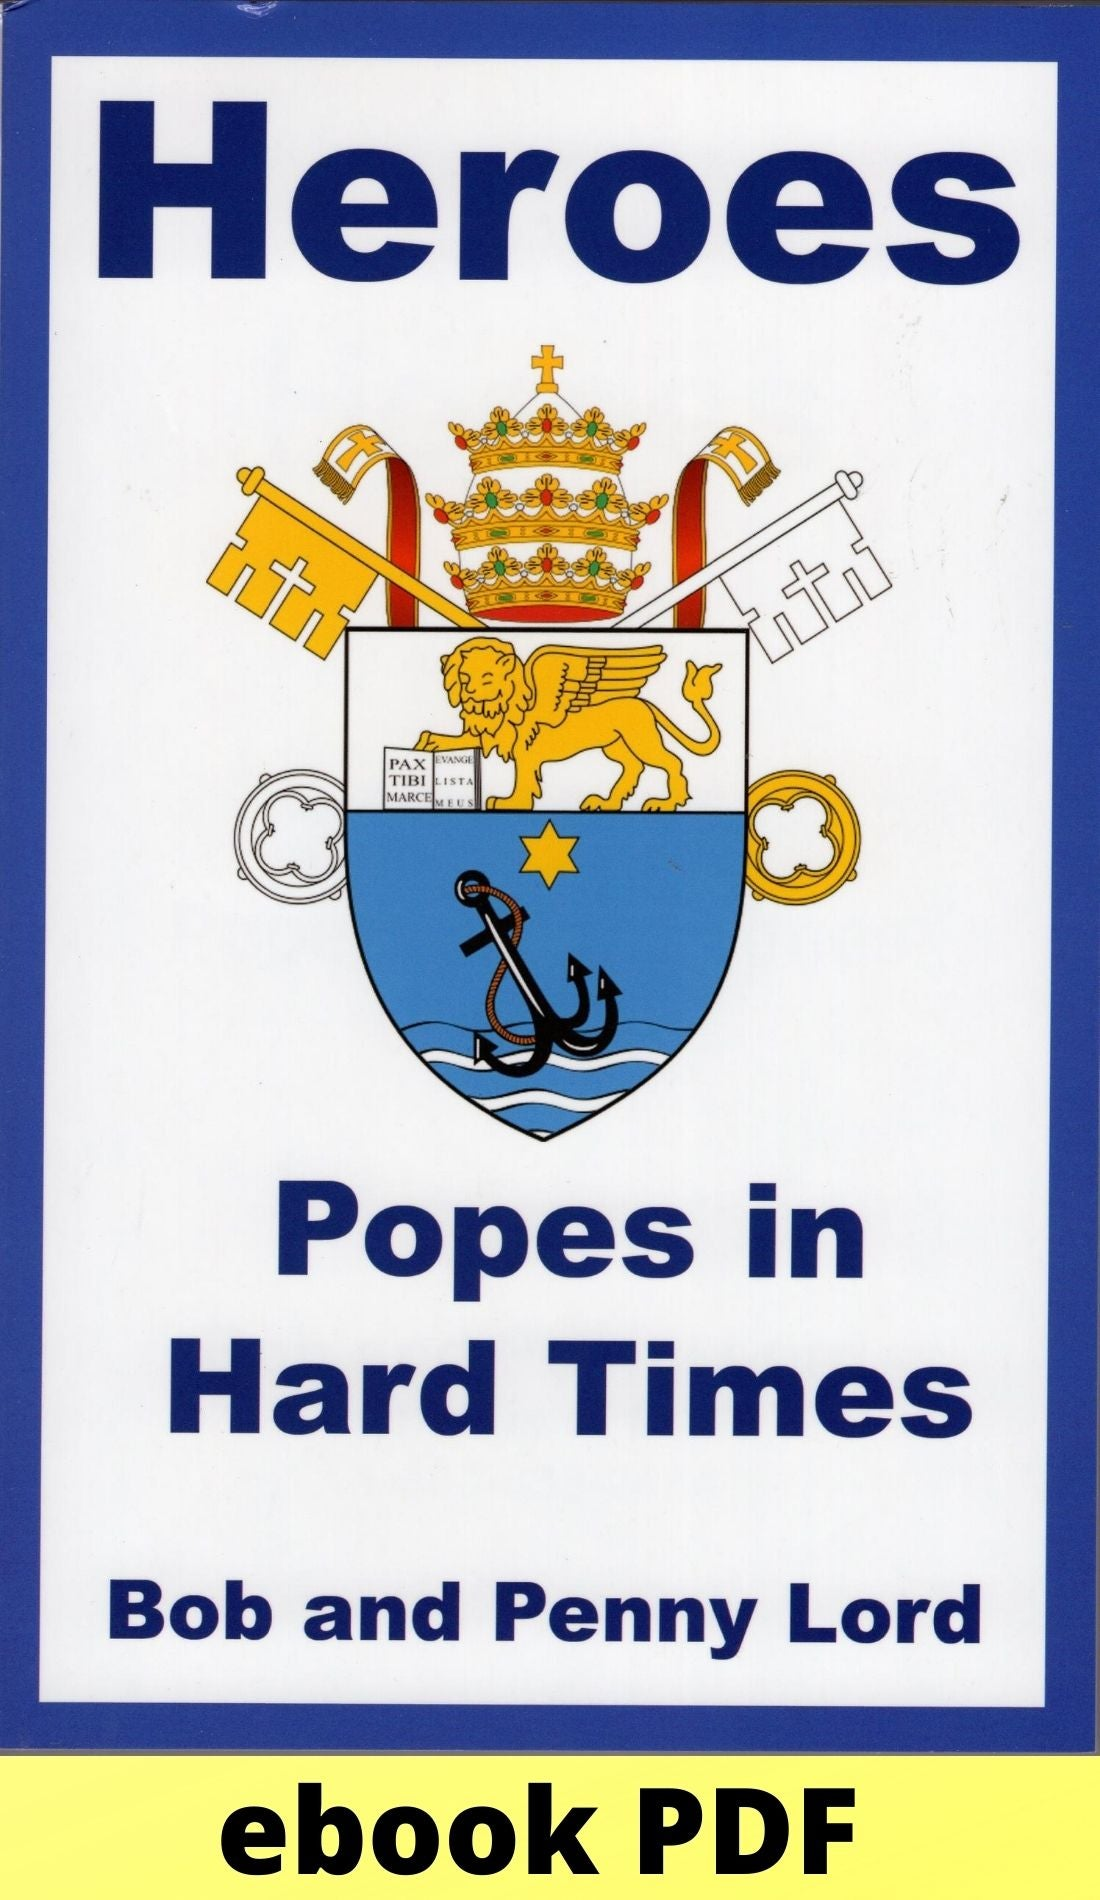 Heroes Popes in Hard Times - Bob and Penny Lord